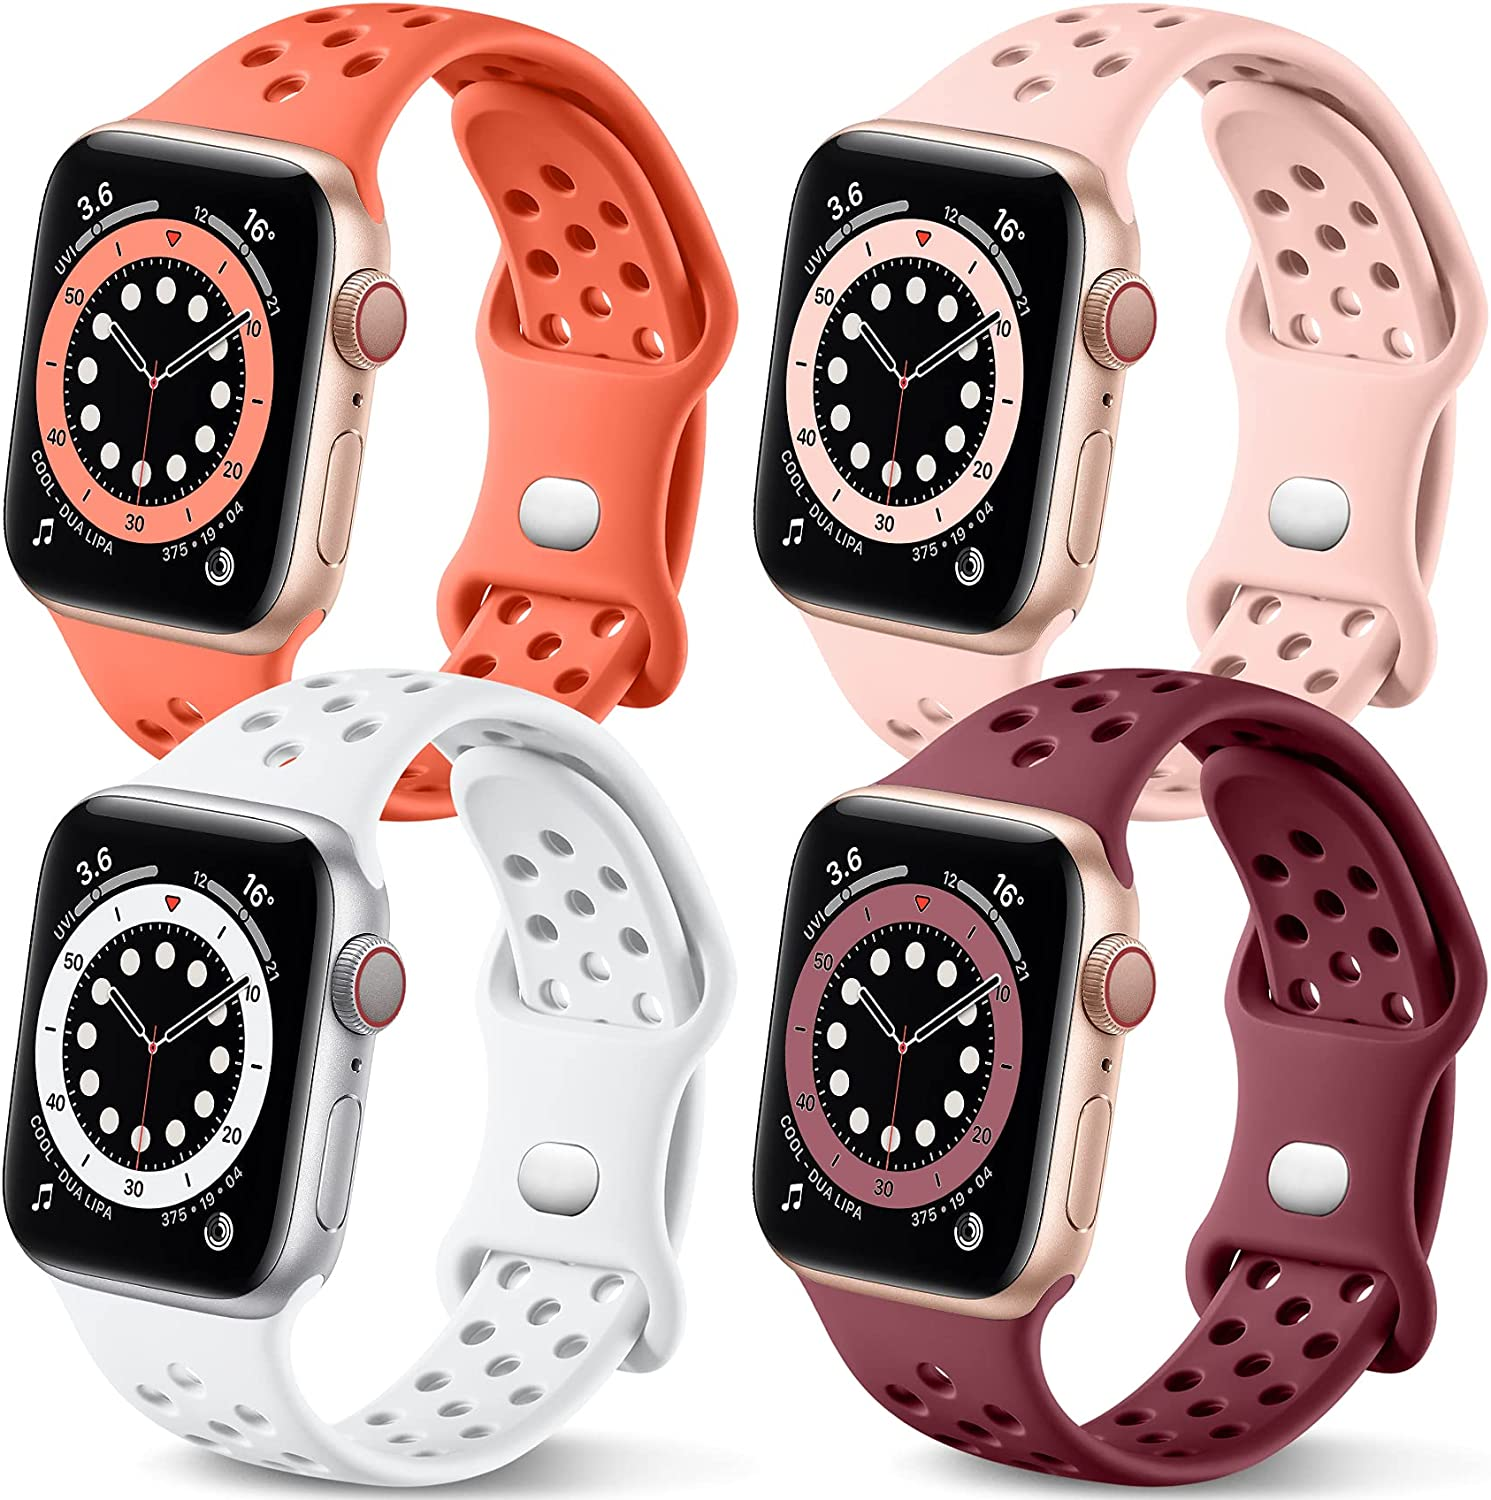 Getino Compatible with Apple Watch Band 40mm 38mm iWatch SE & Series 6 & Series 5 4 3 2 1 for Women Men, Soft Silicone Stylish Breathable Sport Replacement Wristband, 4 Pack, White/Wine Red/Pink/Coral